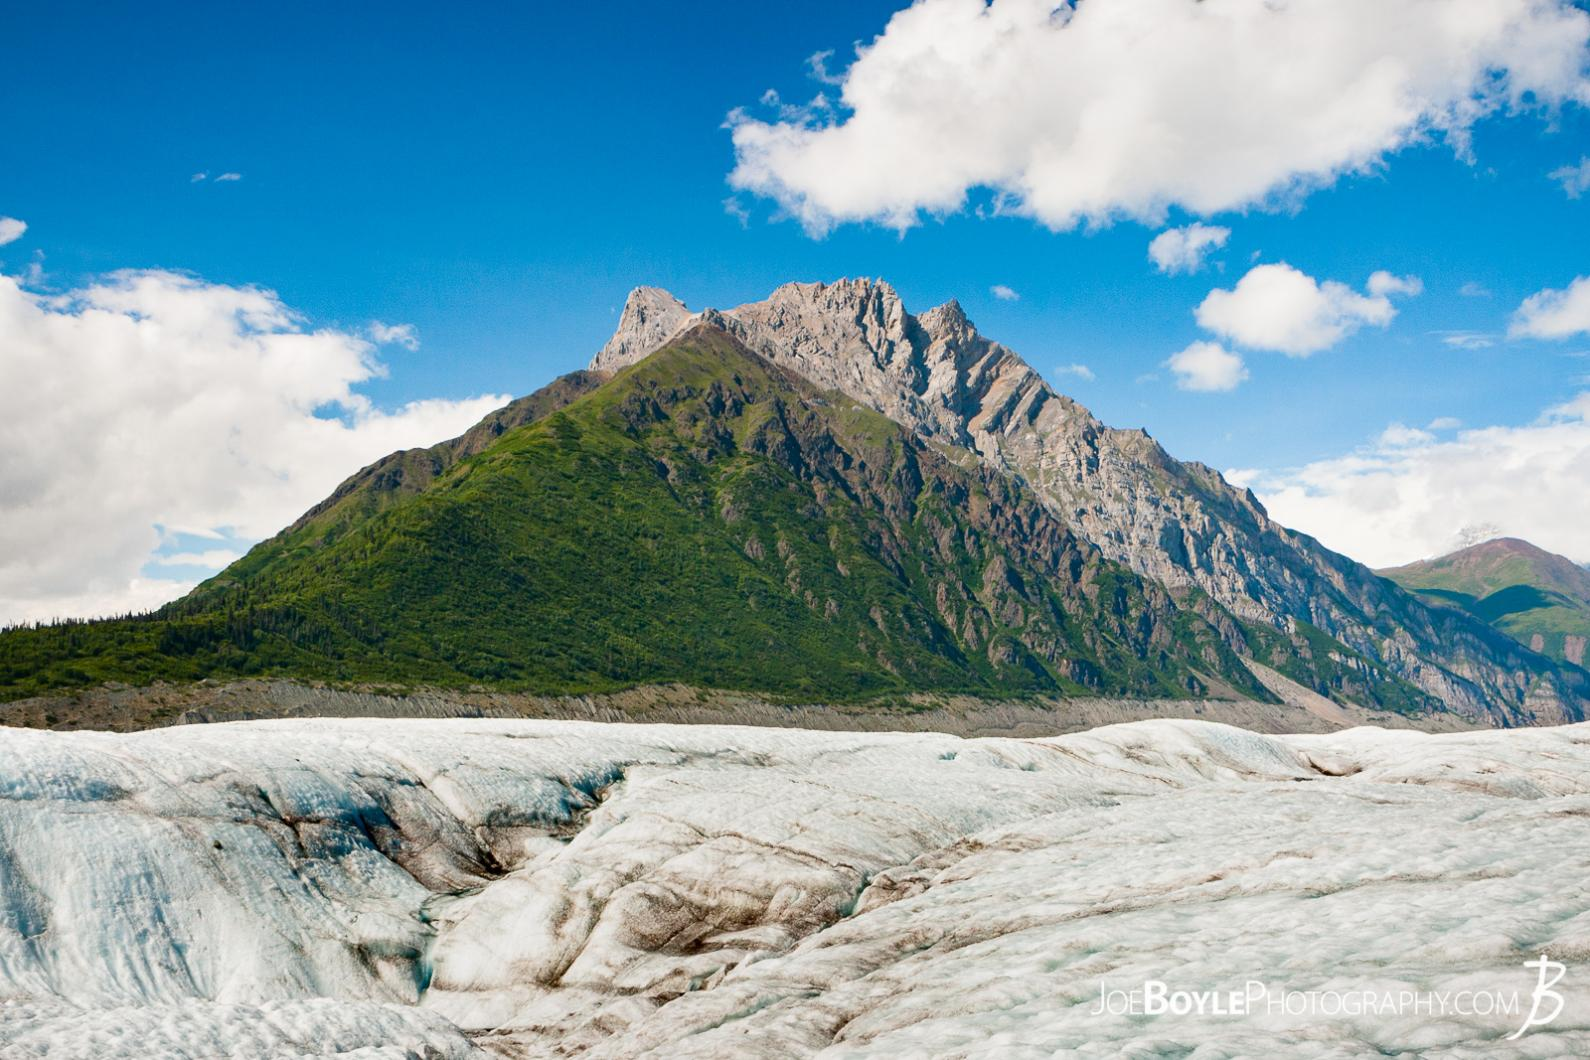 donoho-peak-and-root-glacier-wrangell-st-elias-national-park